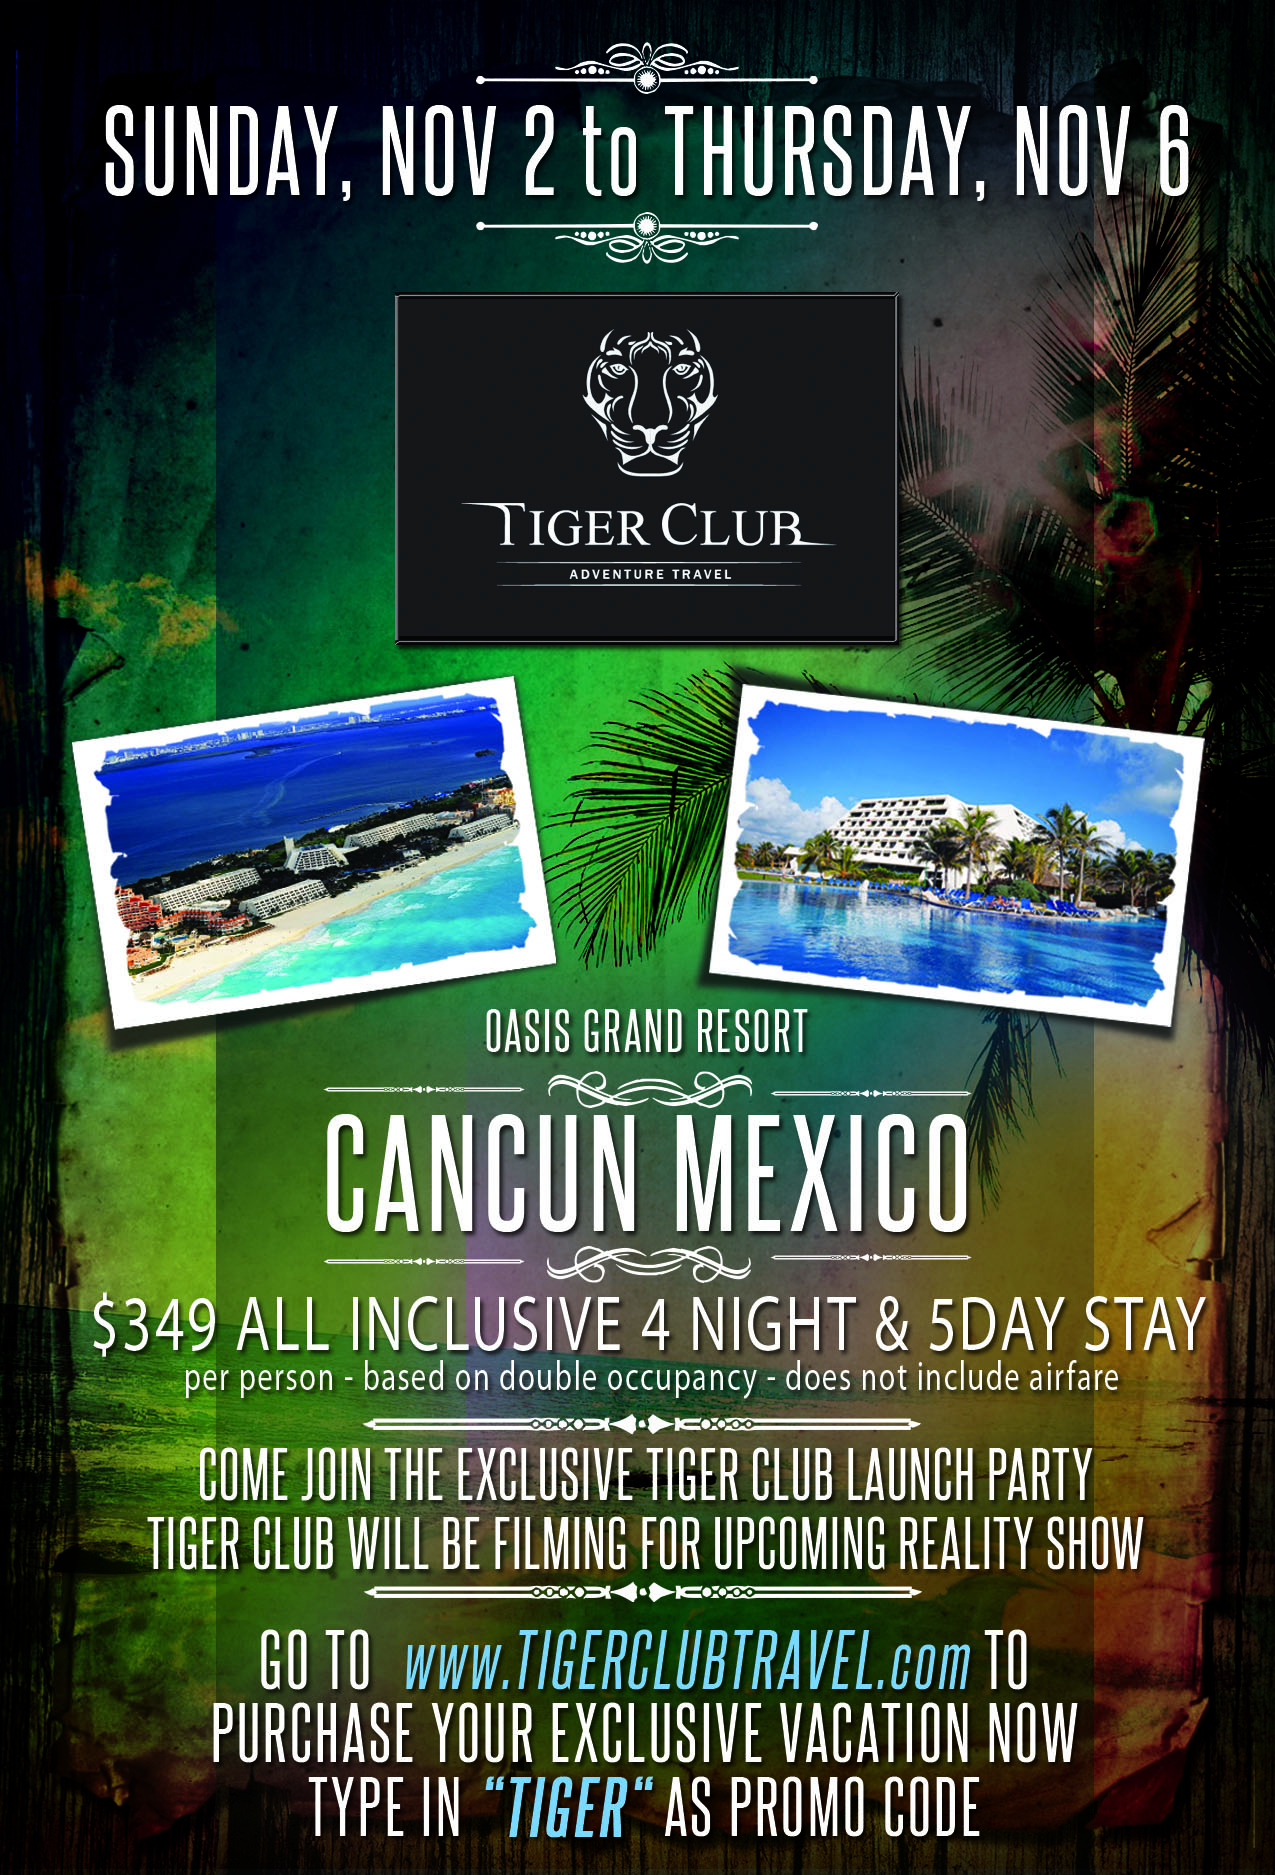 Tiger Club Party CanCun Nov 2014